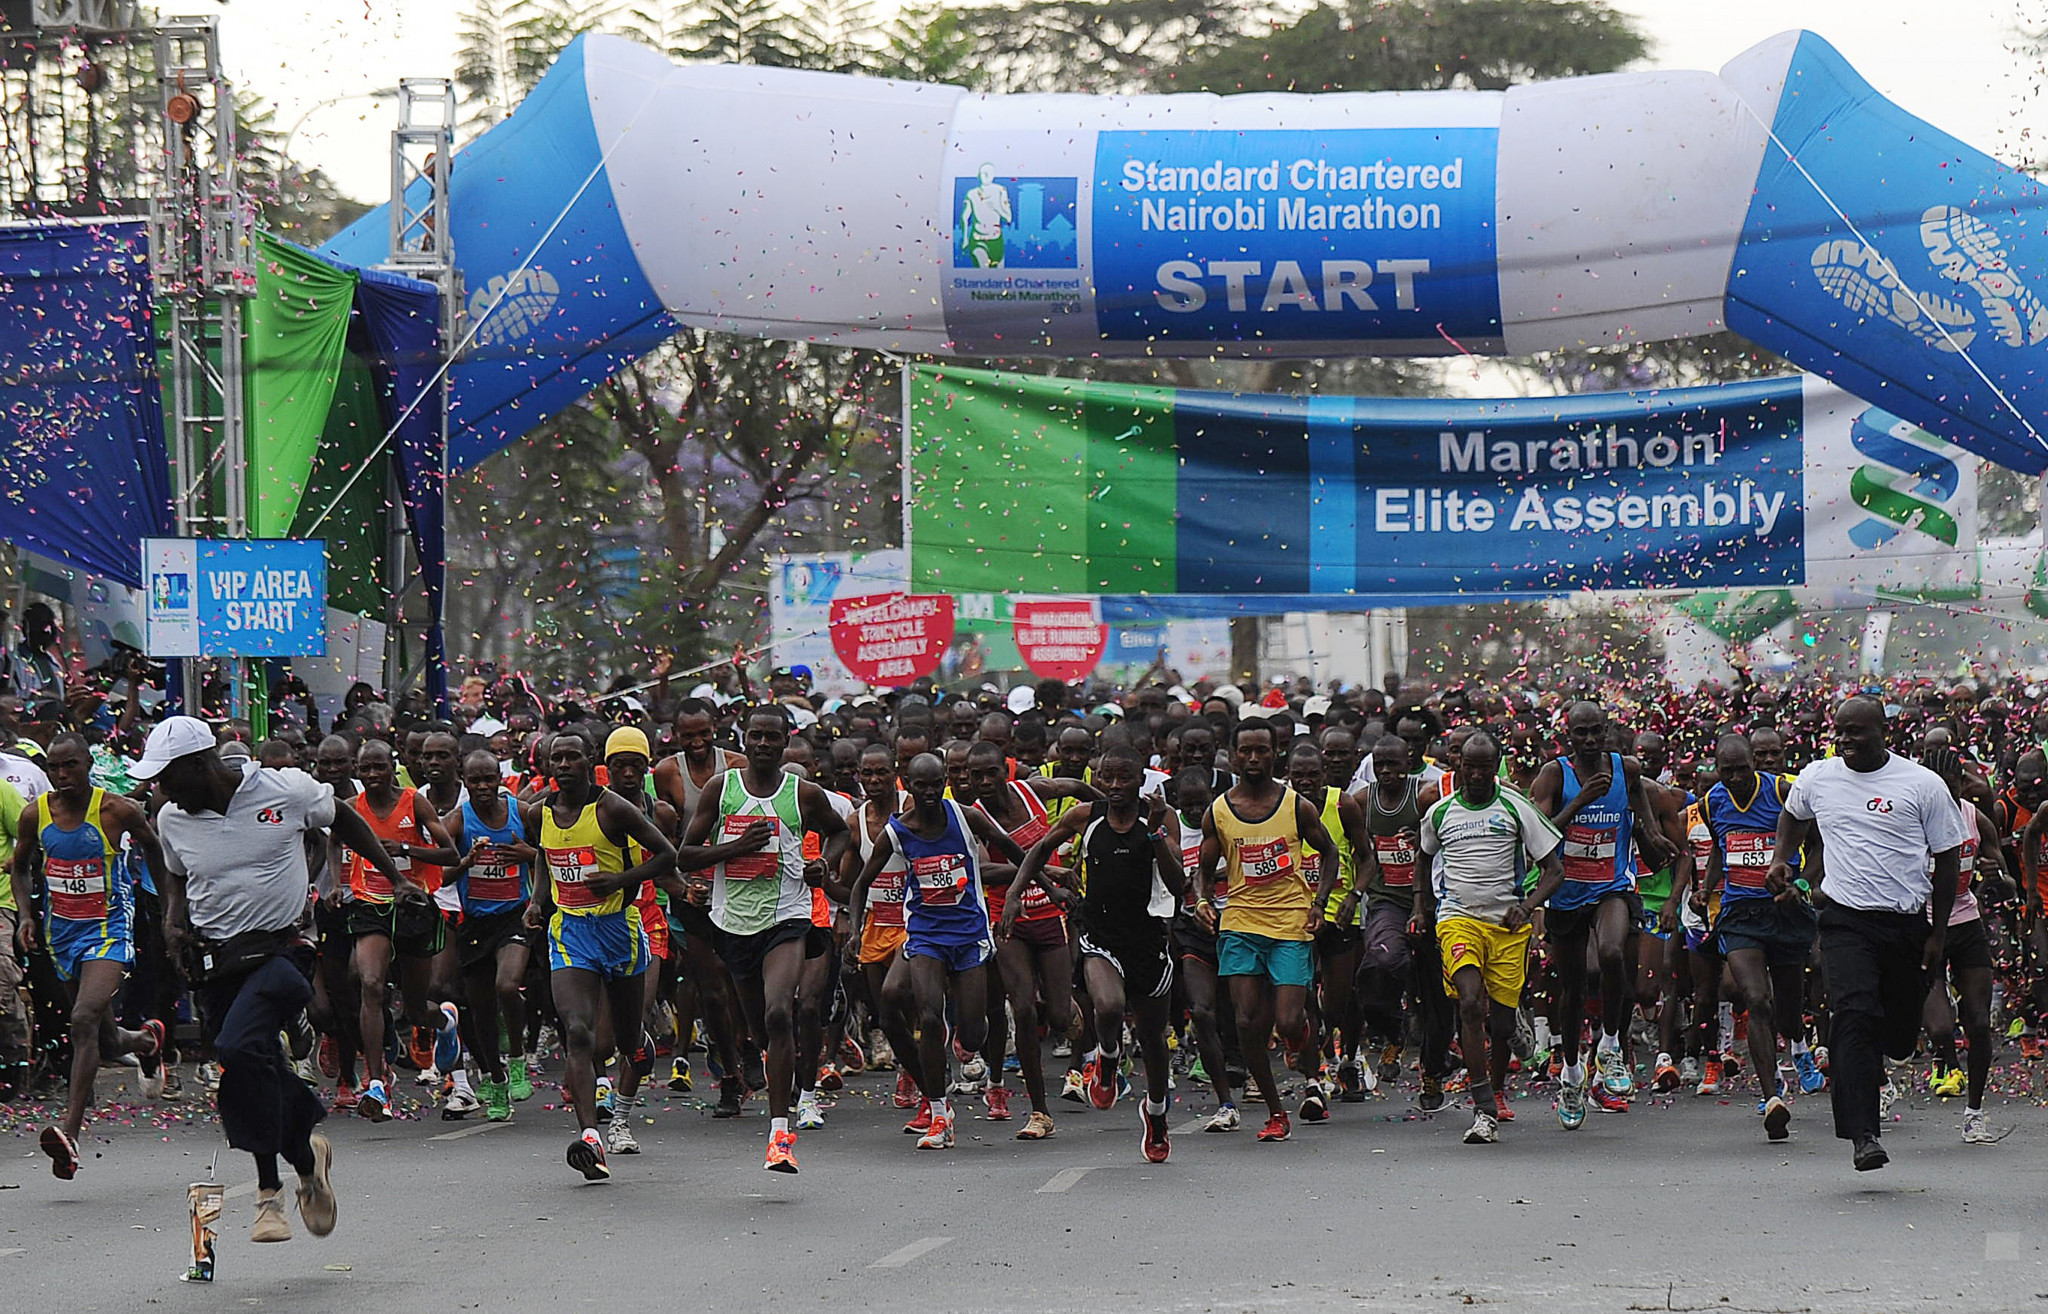 The Nairobi Marathon is sponsored by Standard Chartered Bank ©Getty Images